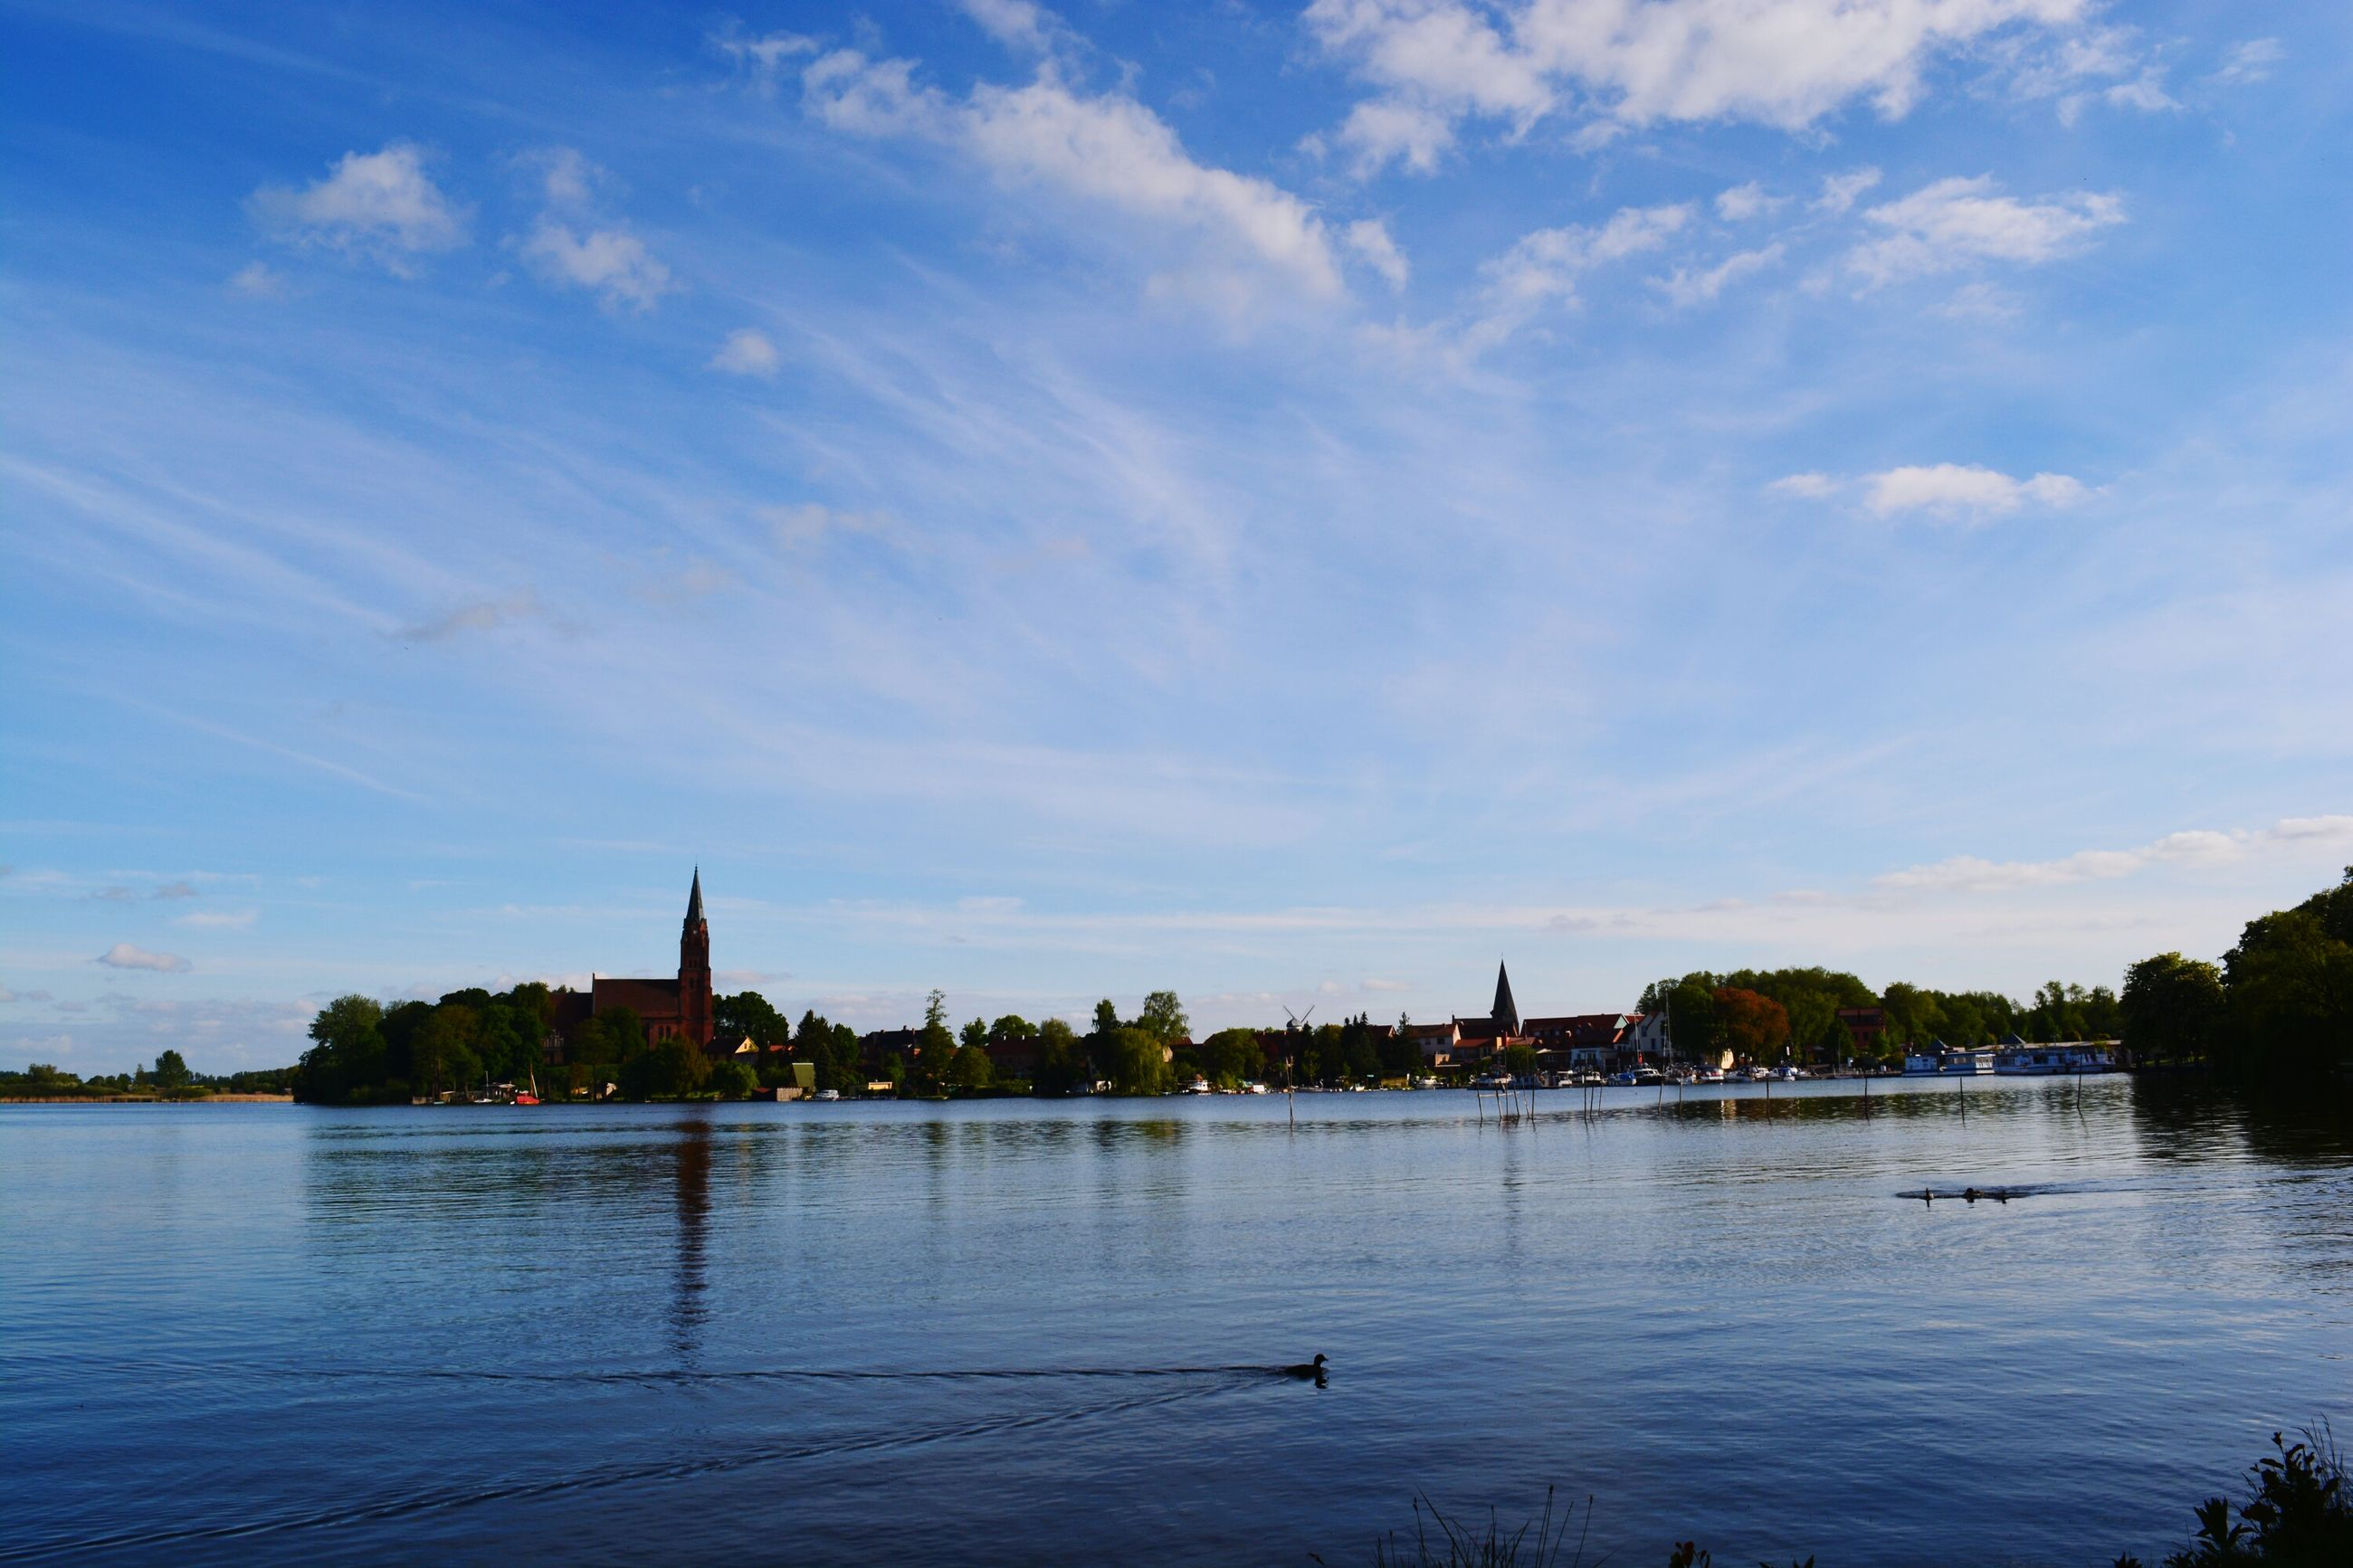 water, sky, built structure, architecture, cloud - sky, cloud, tranquility, scenics, blue, tranquil scene, nature, outdoors, beauty in nature, no people, cloudy, rippled, idyllic, calm, day, travel destinations